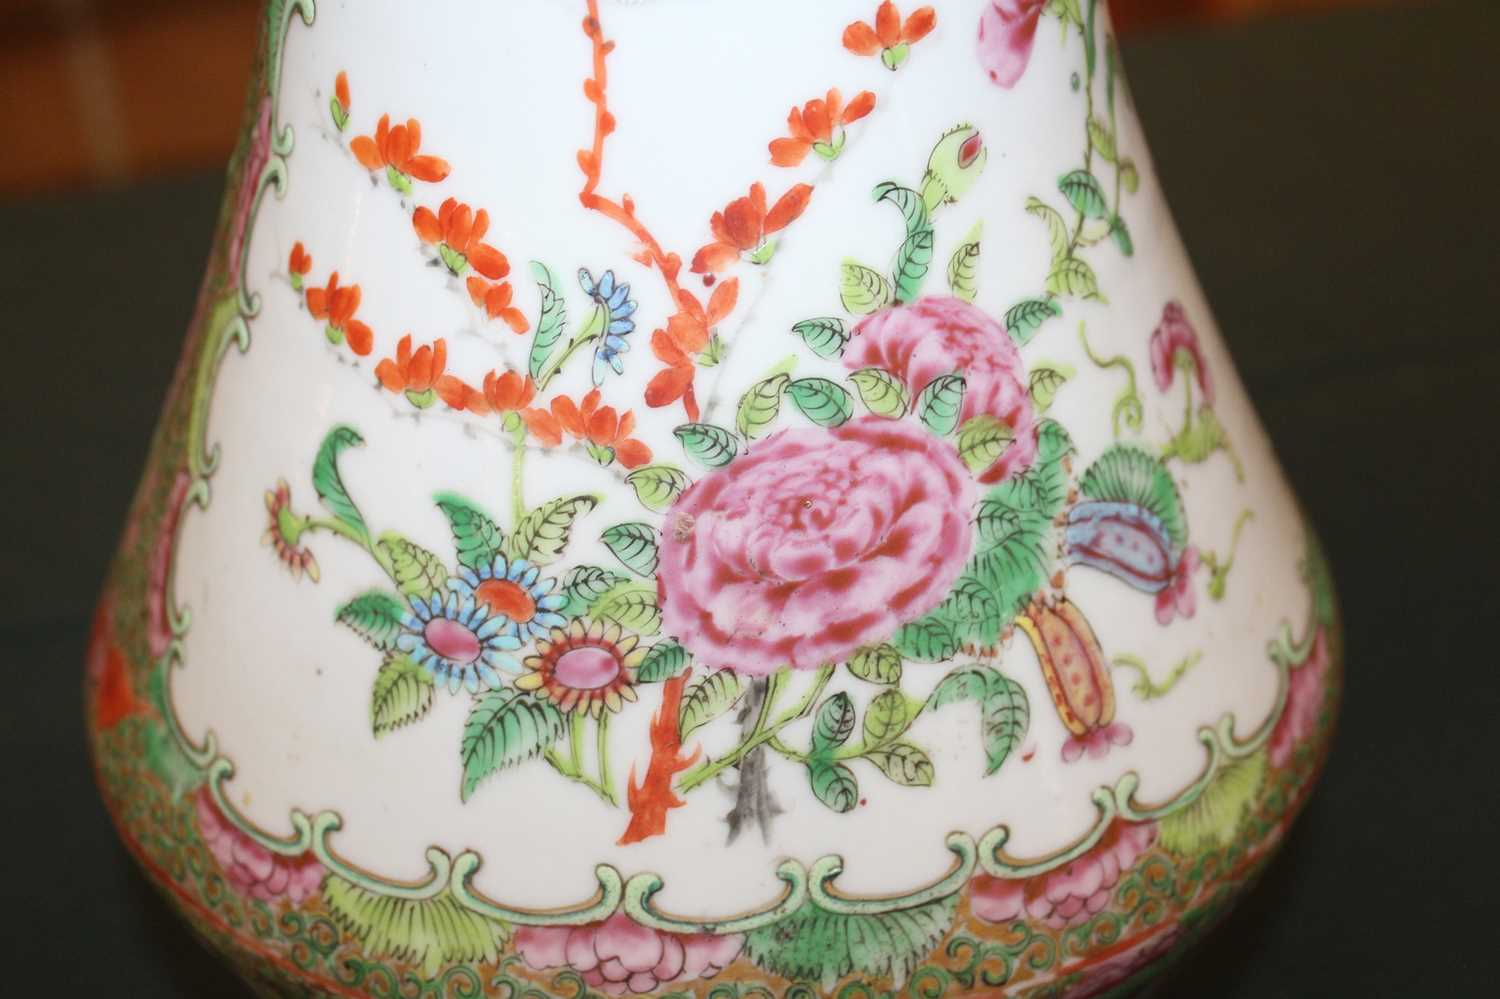 A 19th century Chinese Canton famille rose vase, enamel decorated with ceremonial figure scenes - Image 8 of 18